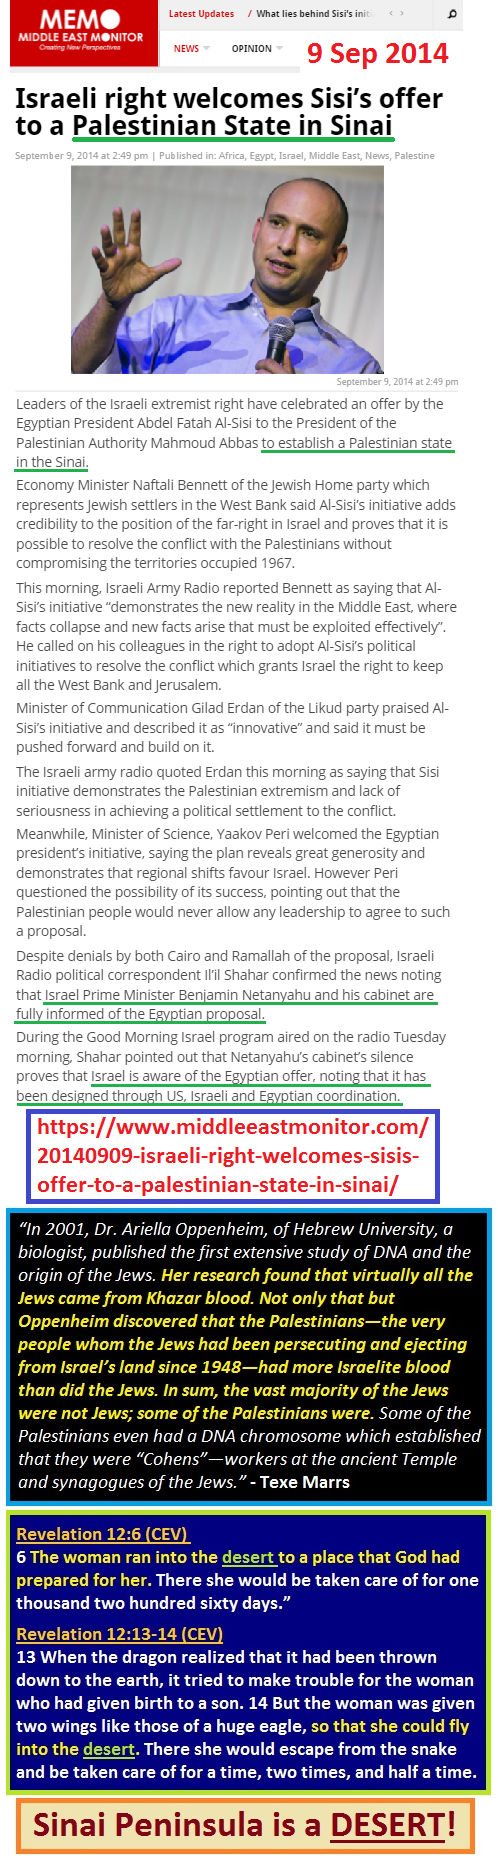 https://www.middleeastmonitor.com/20140909-israeli-right-welcomes-sisis-offer-to-a-palestinian-state-in-sinai/